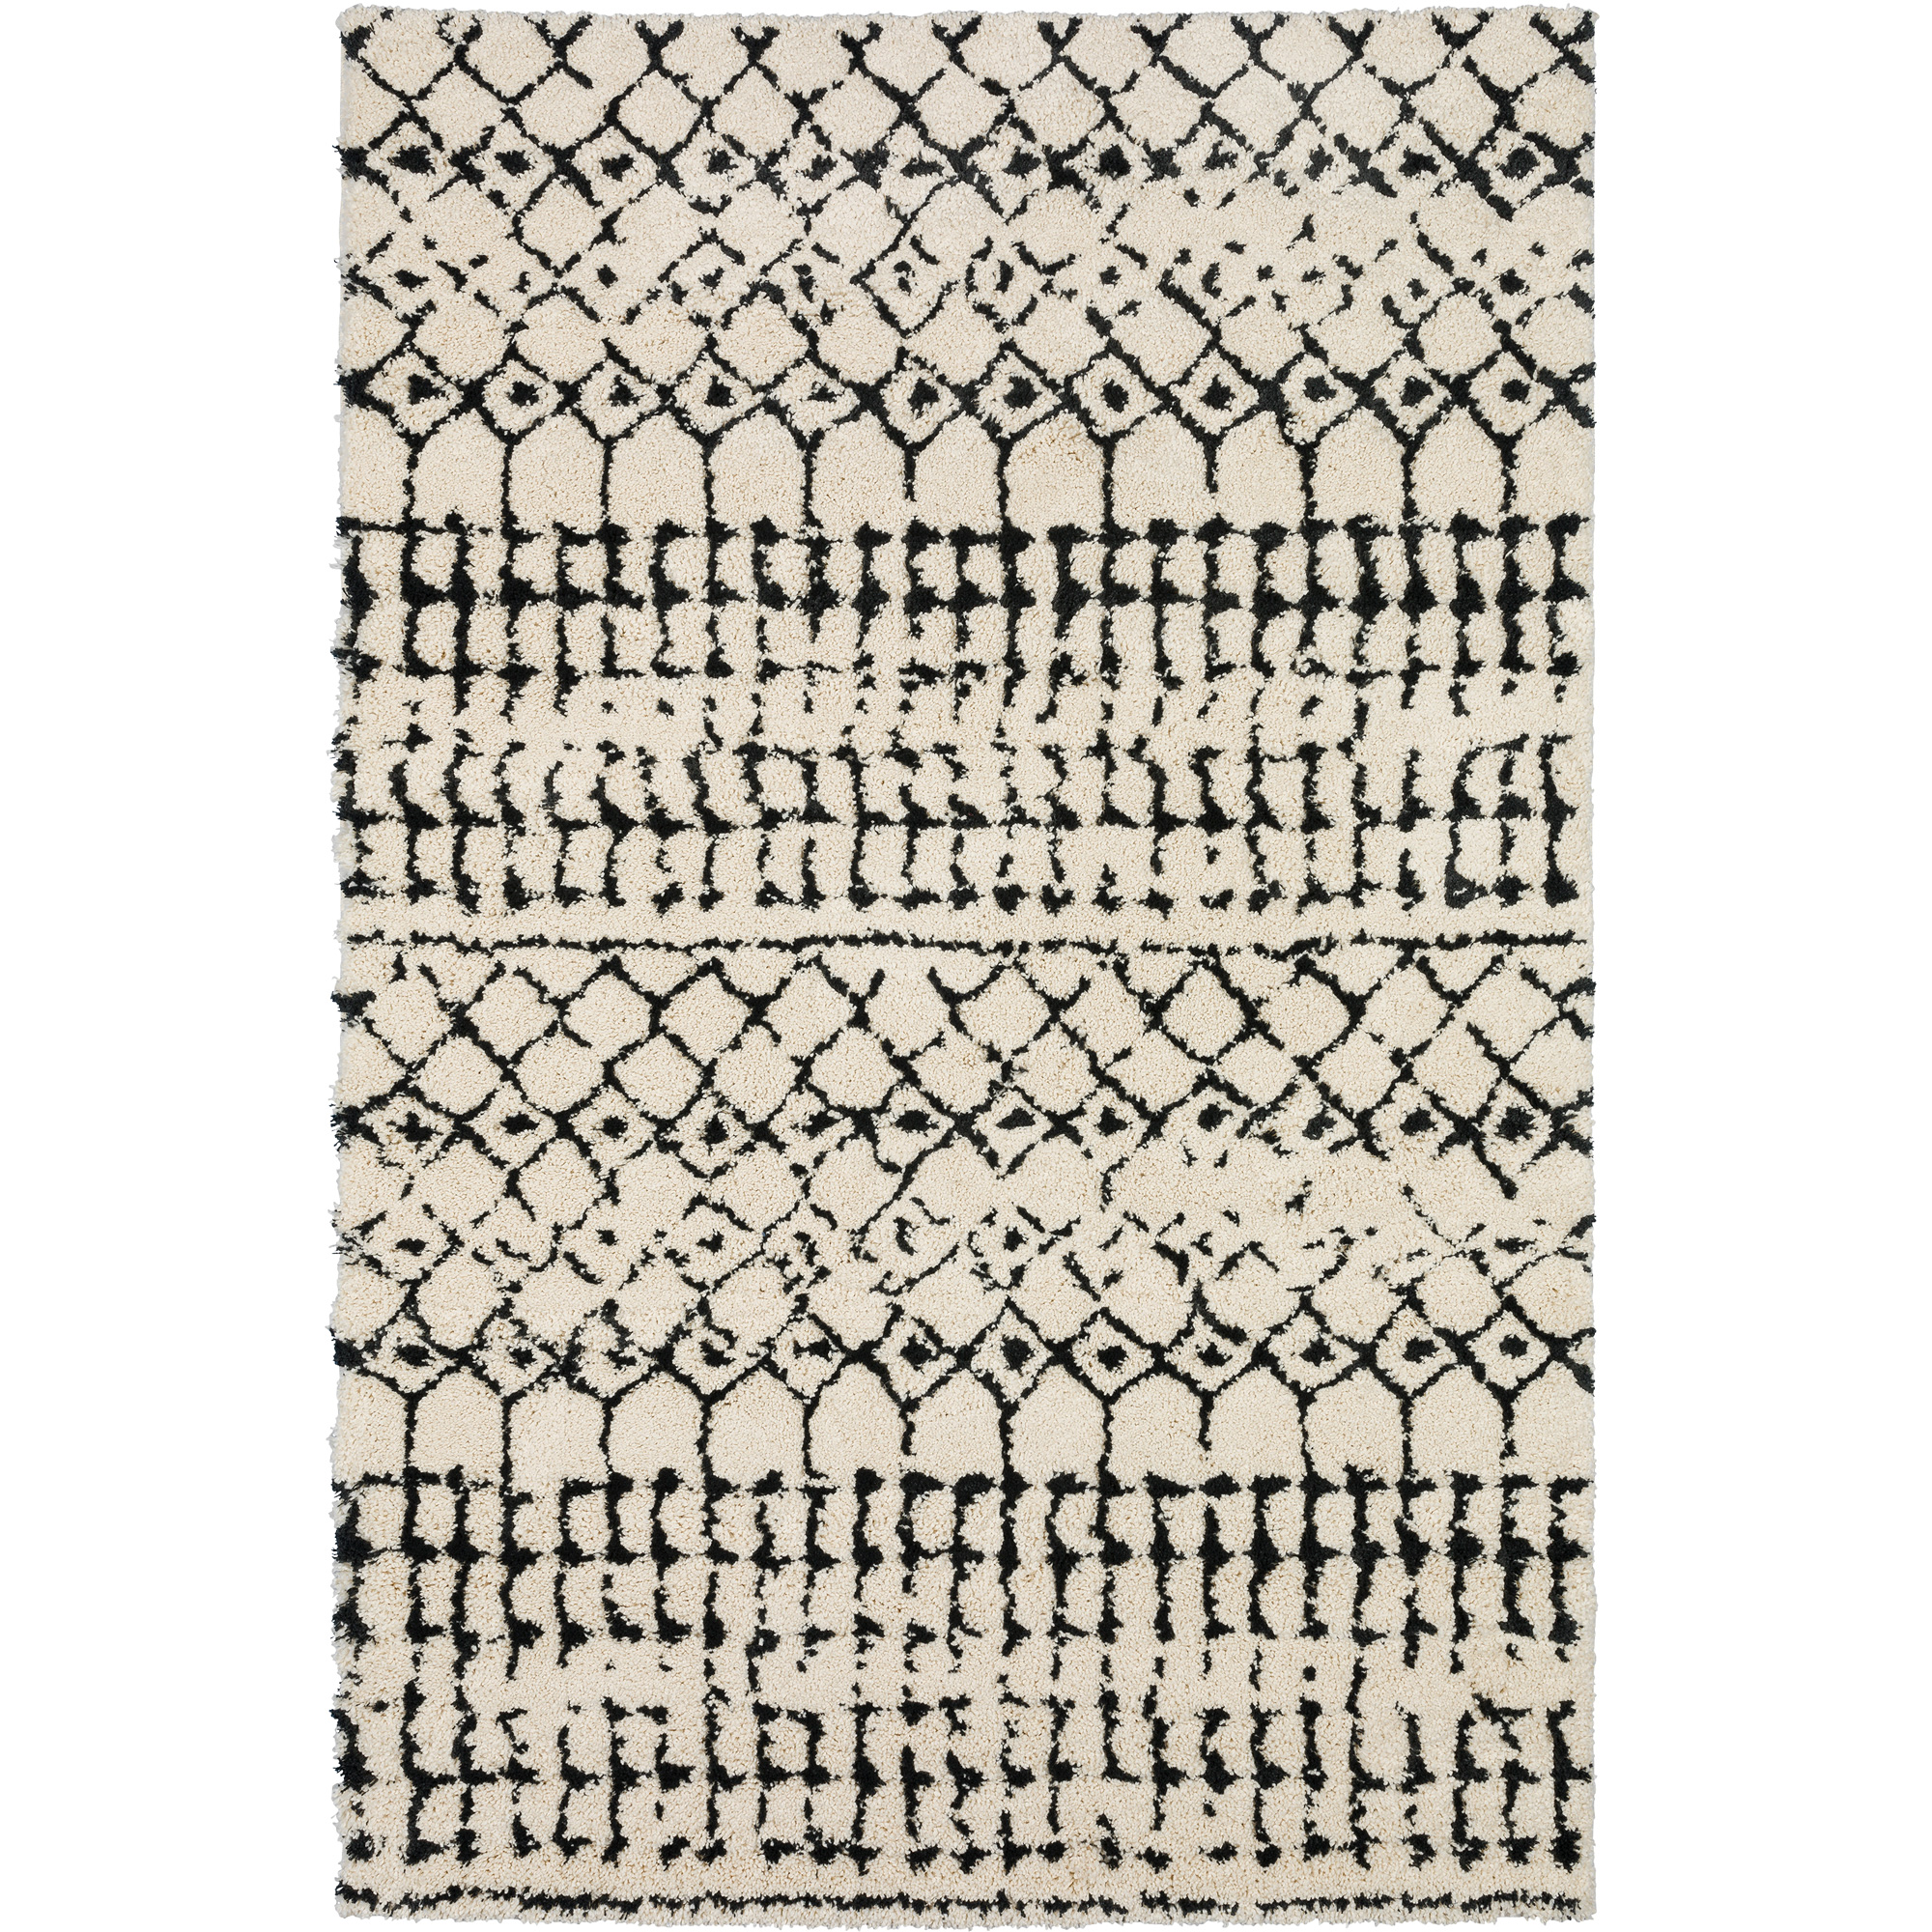 Dalyn Rug Company | Marquee Ivory And Midnight 8x10 Area Rug